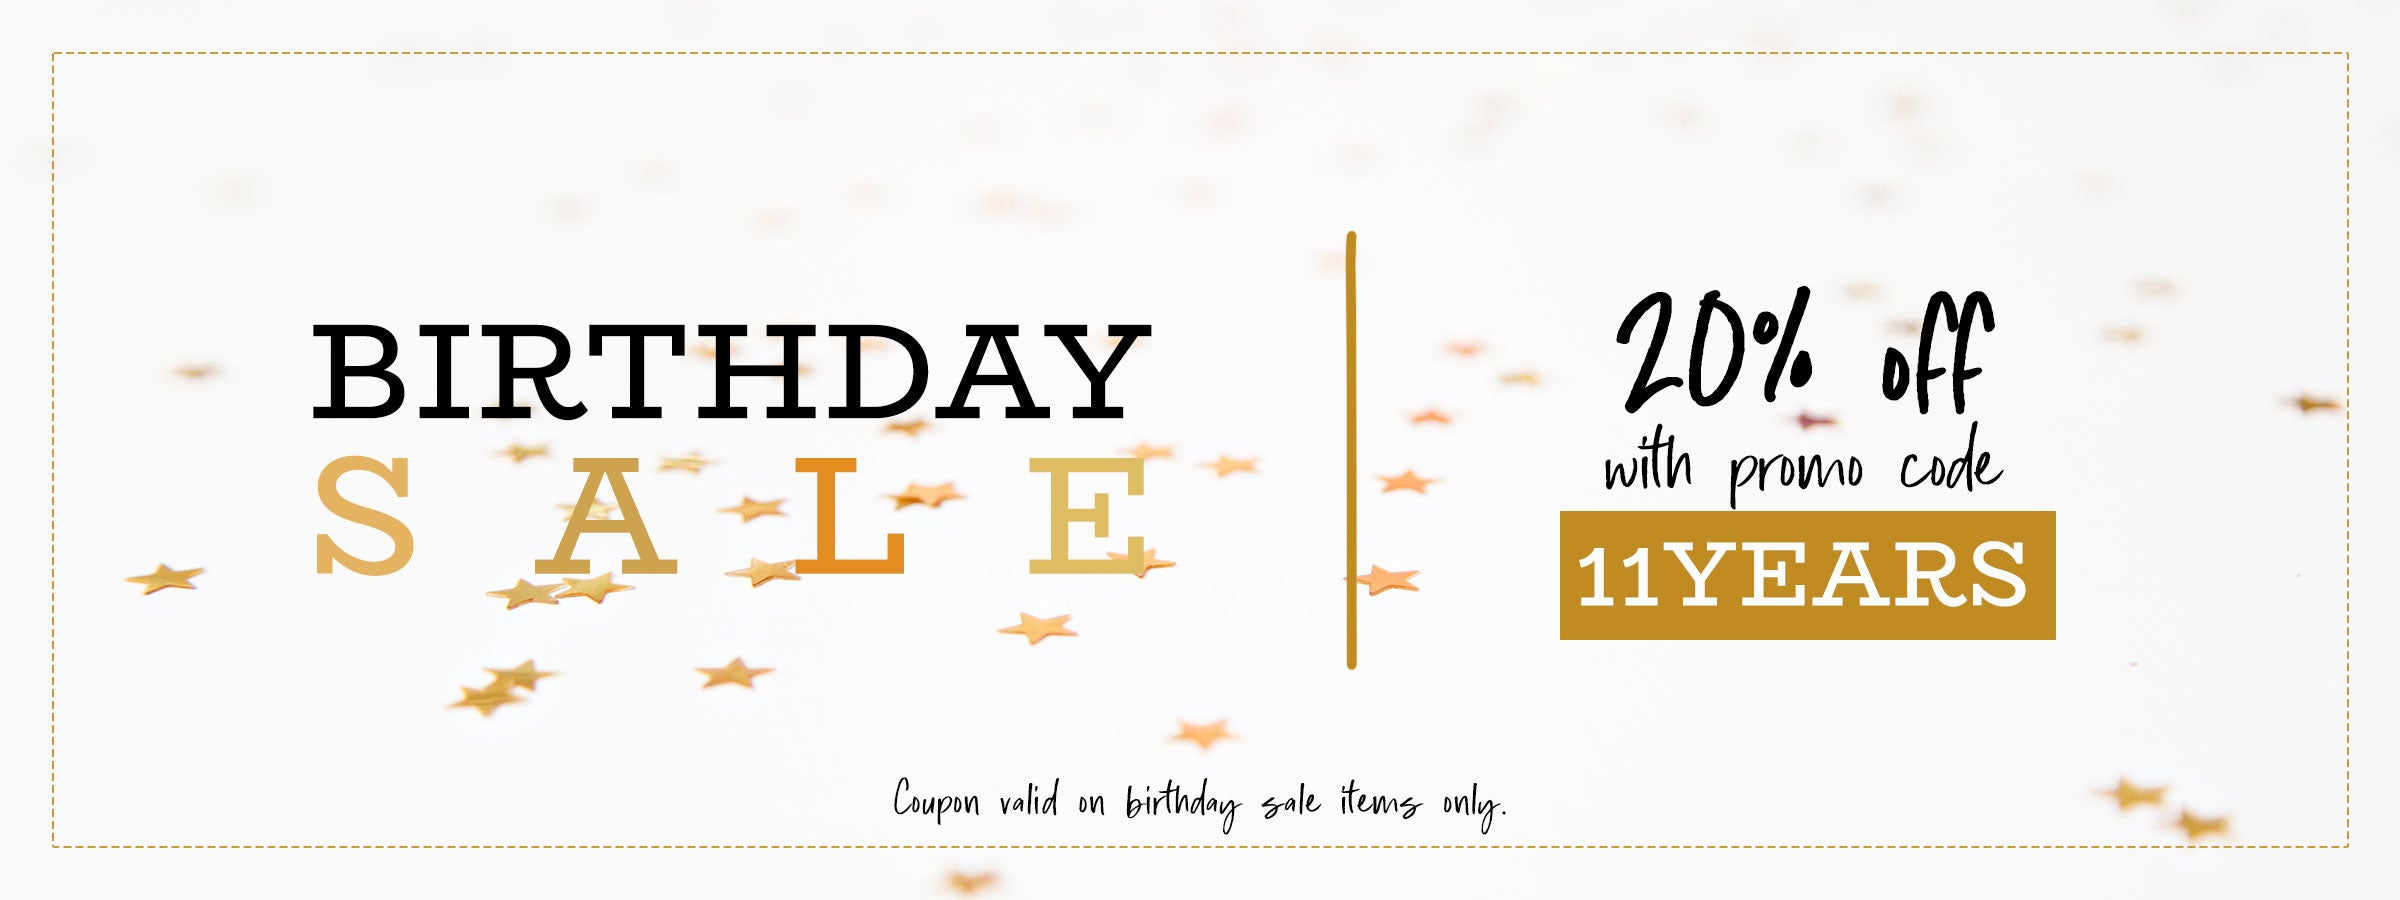 Birthday sale promo - 20% off select items with code 11YEARS